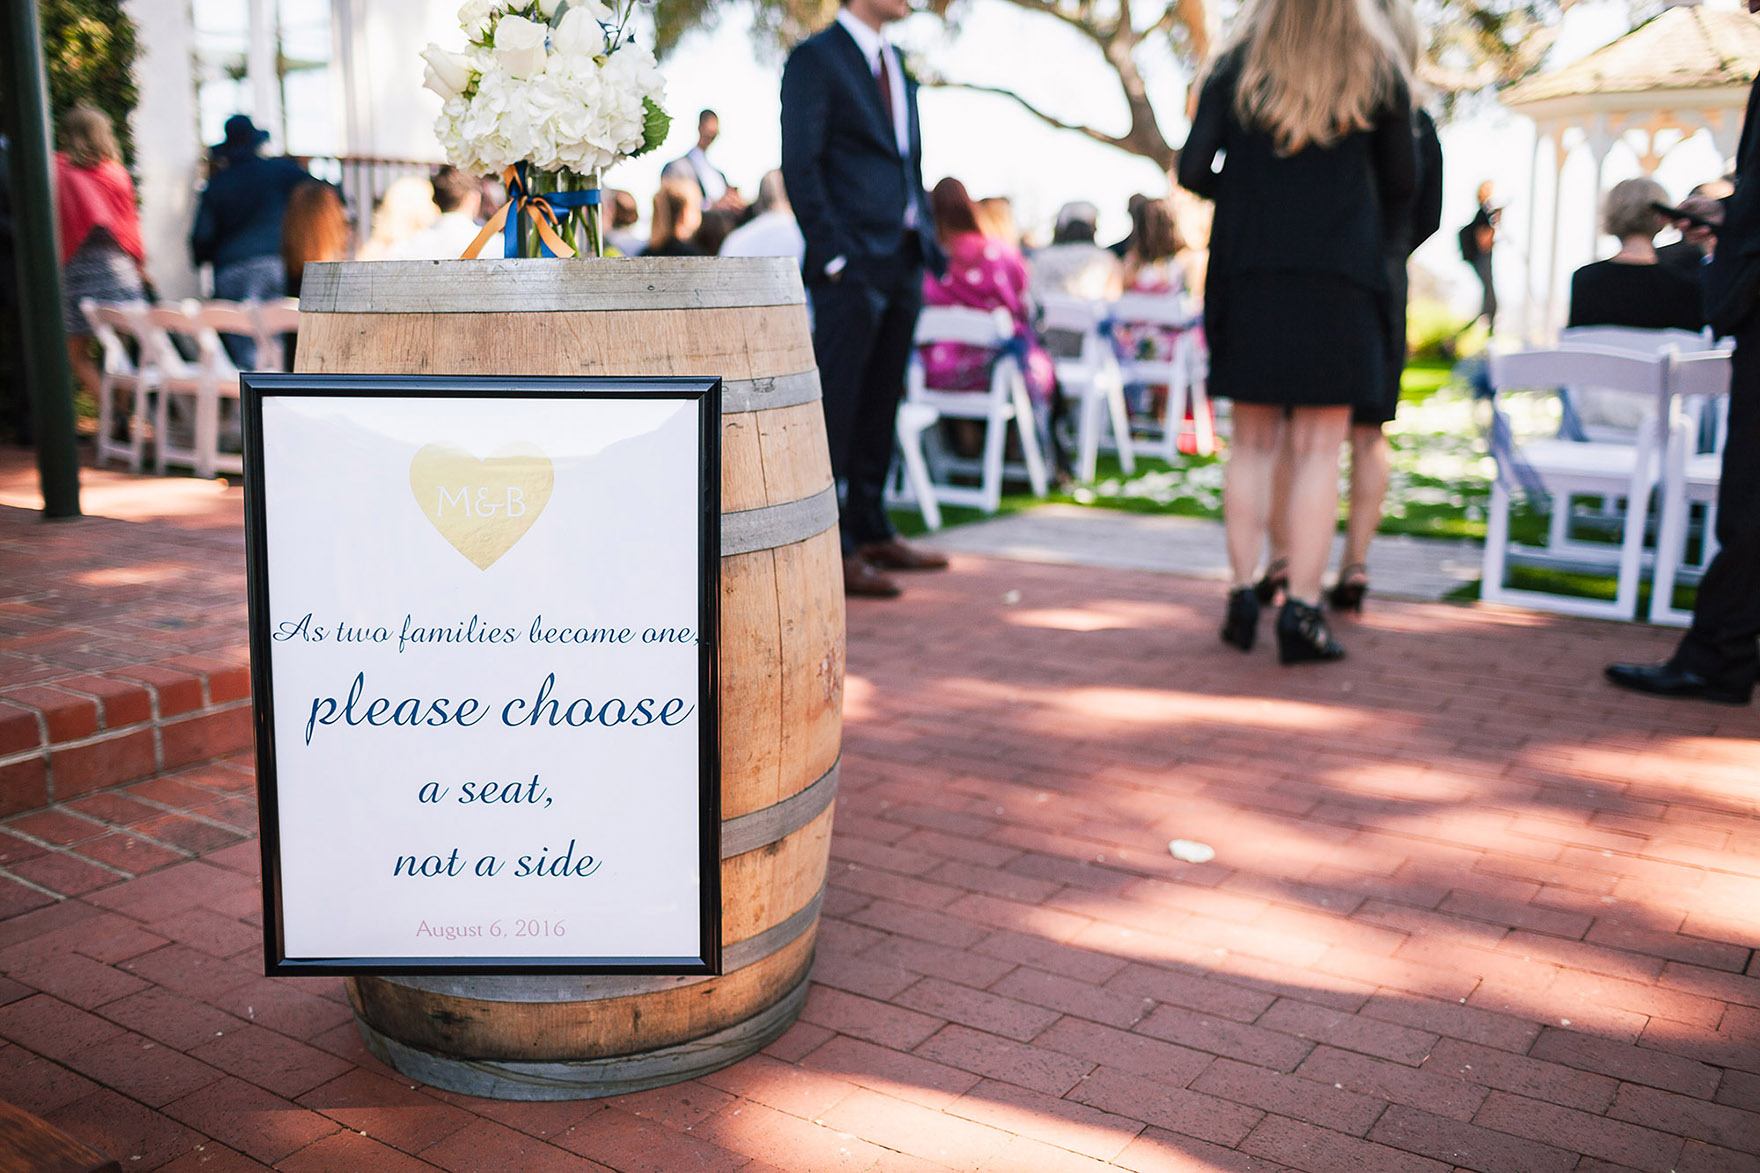 signs signage greet wedding guests and family and friends framed on the wine barrel sitting on the brick as people wait for the ceremony to start at the pasatiempo golf course at the bride and groom newlywed hollins house wedding the perfect santa cruz wedding venue